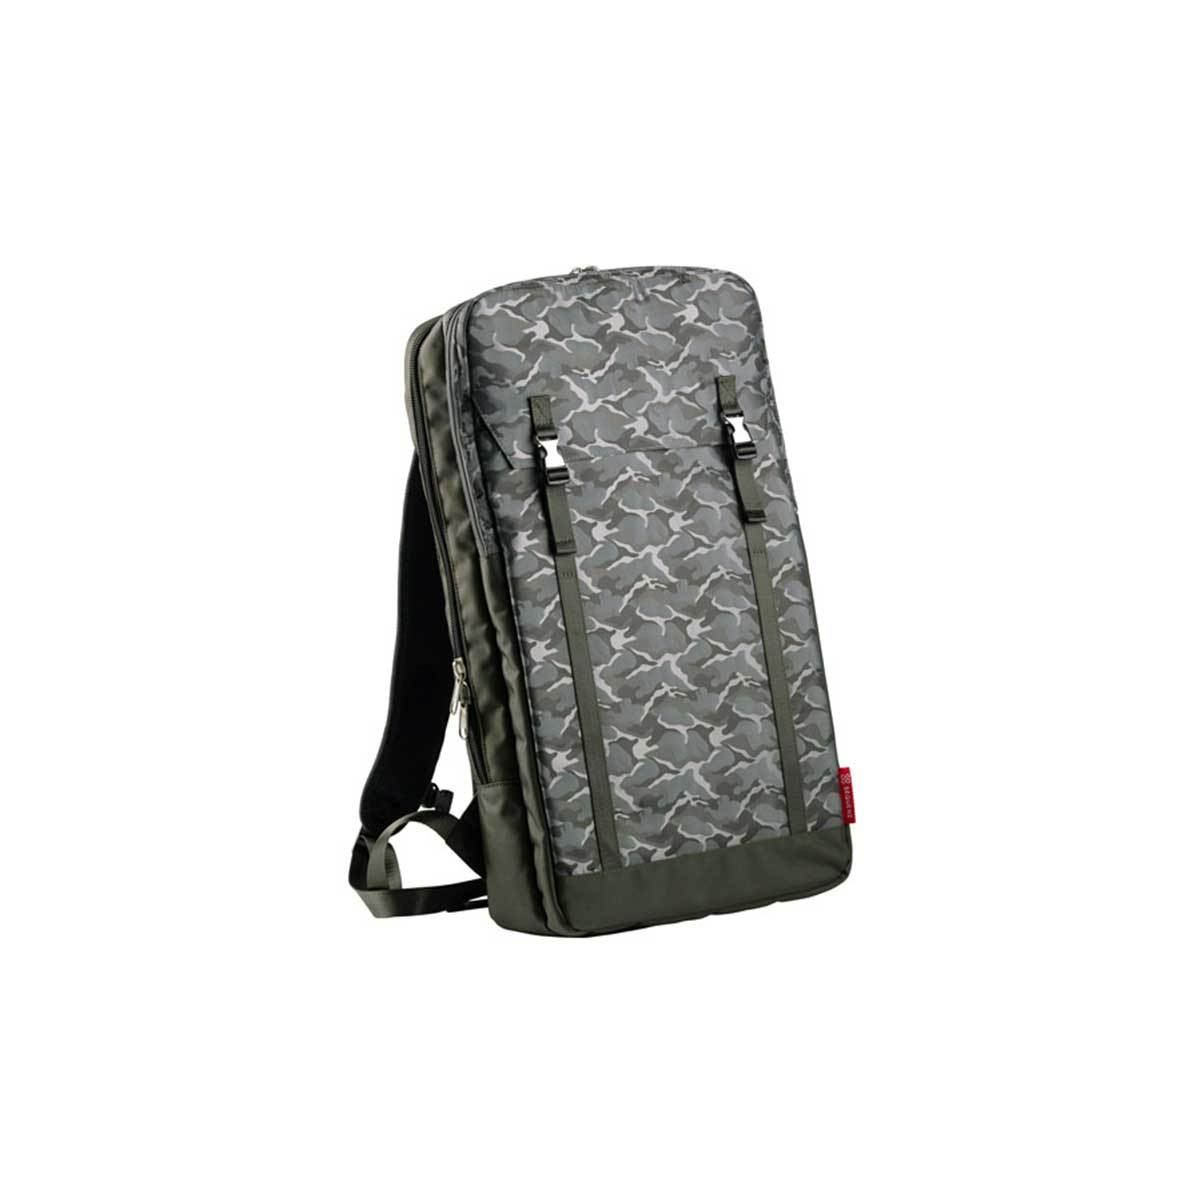 DJ Bags & Cases - Sequenz Tall Multi-Purpose Backpack